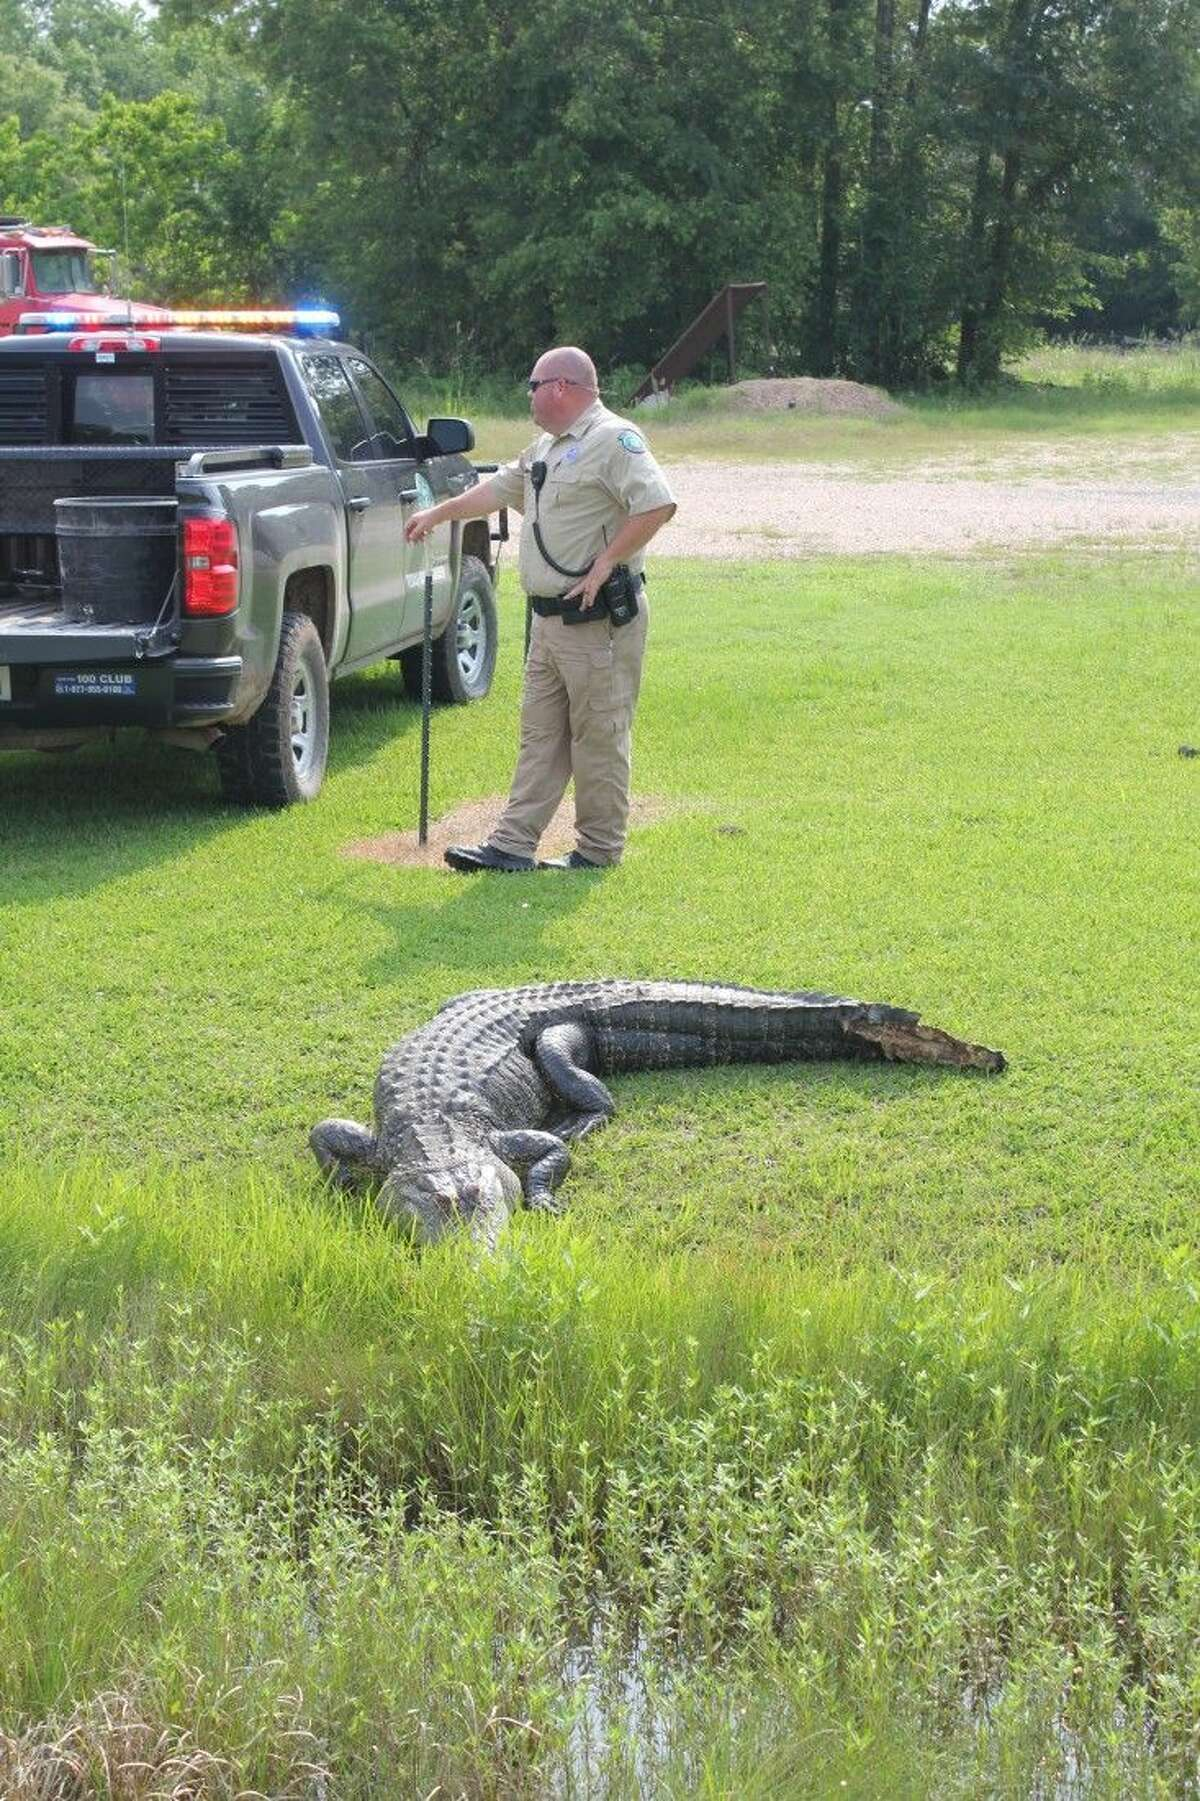 Game Warden Randy Button had to put down this 9-foot alligator Sunday in Moss Hill after it was injured by a car as it crossed SH 146.